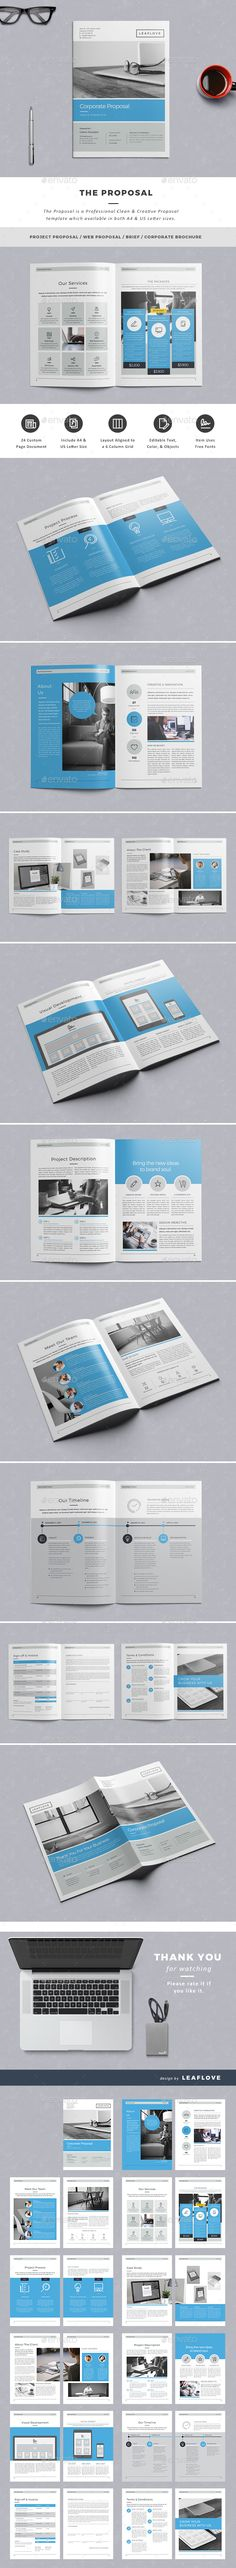 FREE DOWNLOAD! Web Design Proposal by broluthfi on Creative Market - what is in a design proposal